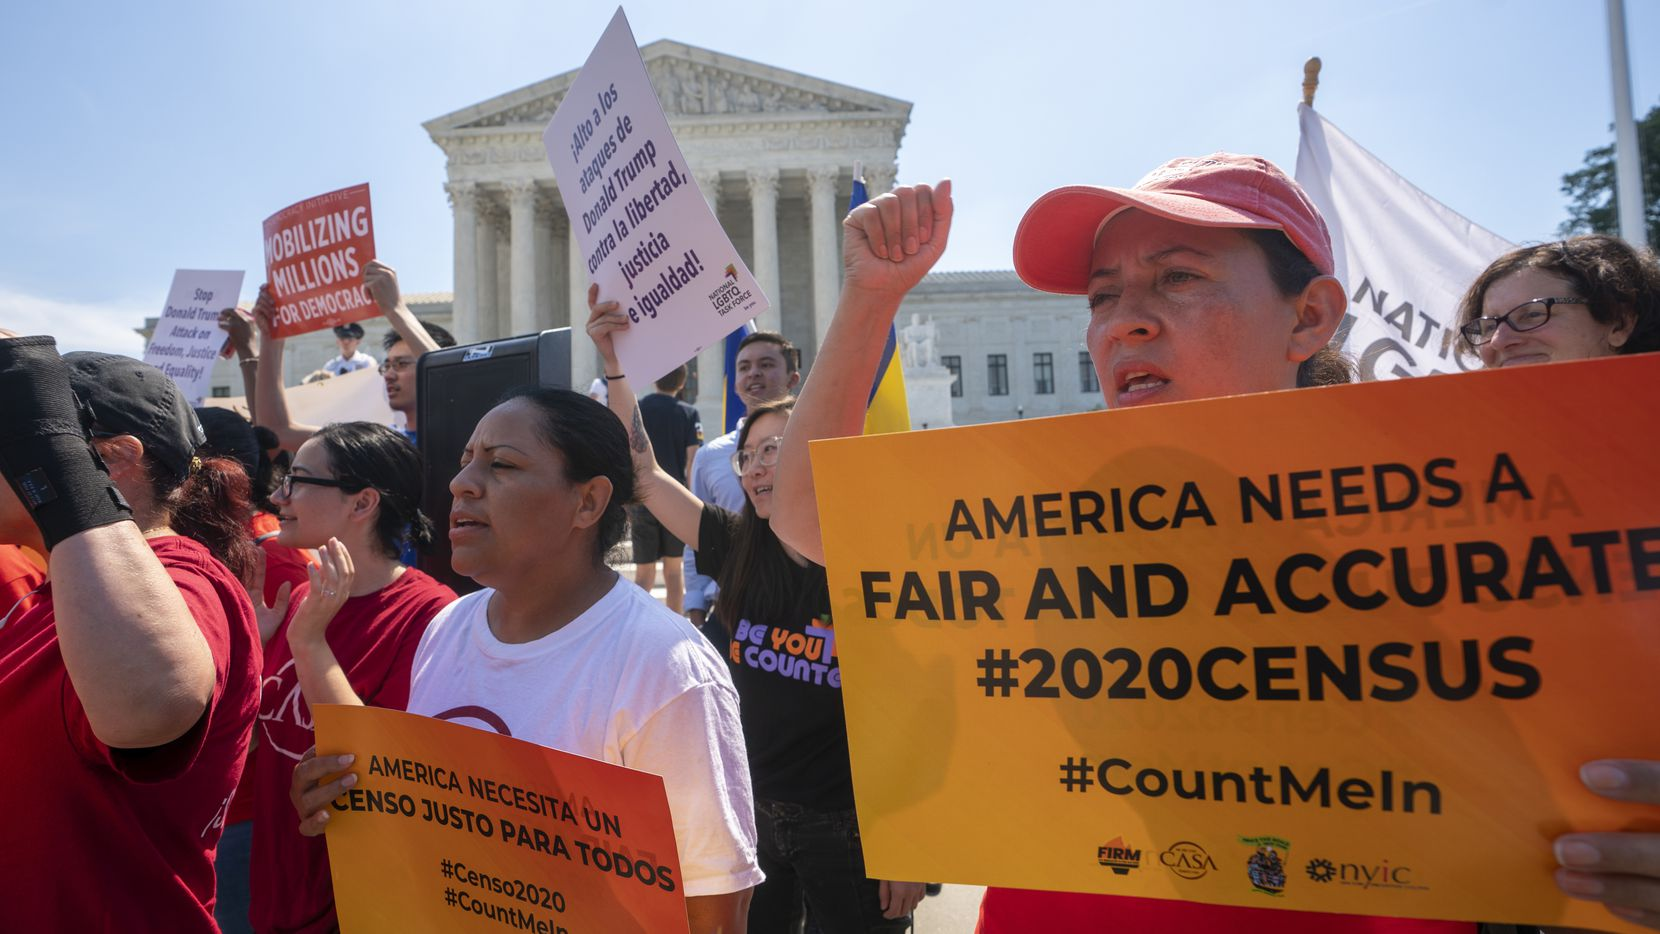 In this June 27, 2019, file photo, demonstrators gather at the Supreme Court on Capitol Hill in Washington. A prominent Latino organization said Monday, Feb. 10, 2020, the U.S. Census Bureau needs to explicitly communicate there will be no citizenship question ahead of the 2020 count, or risk undercounting minority groups.